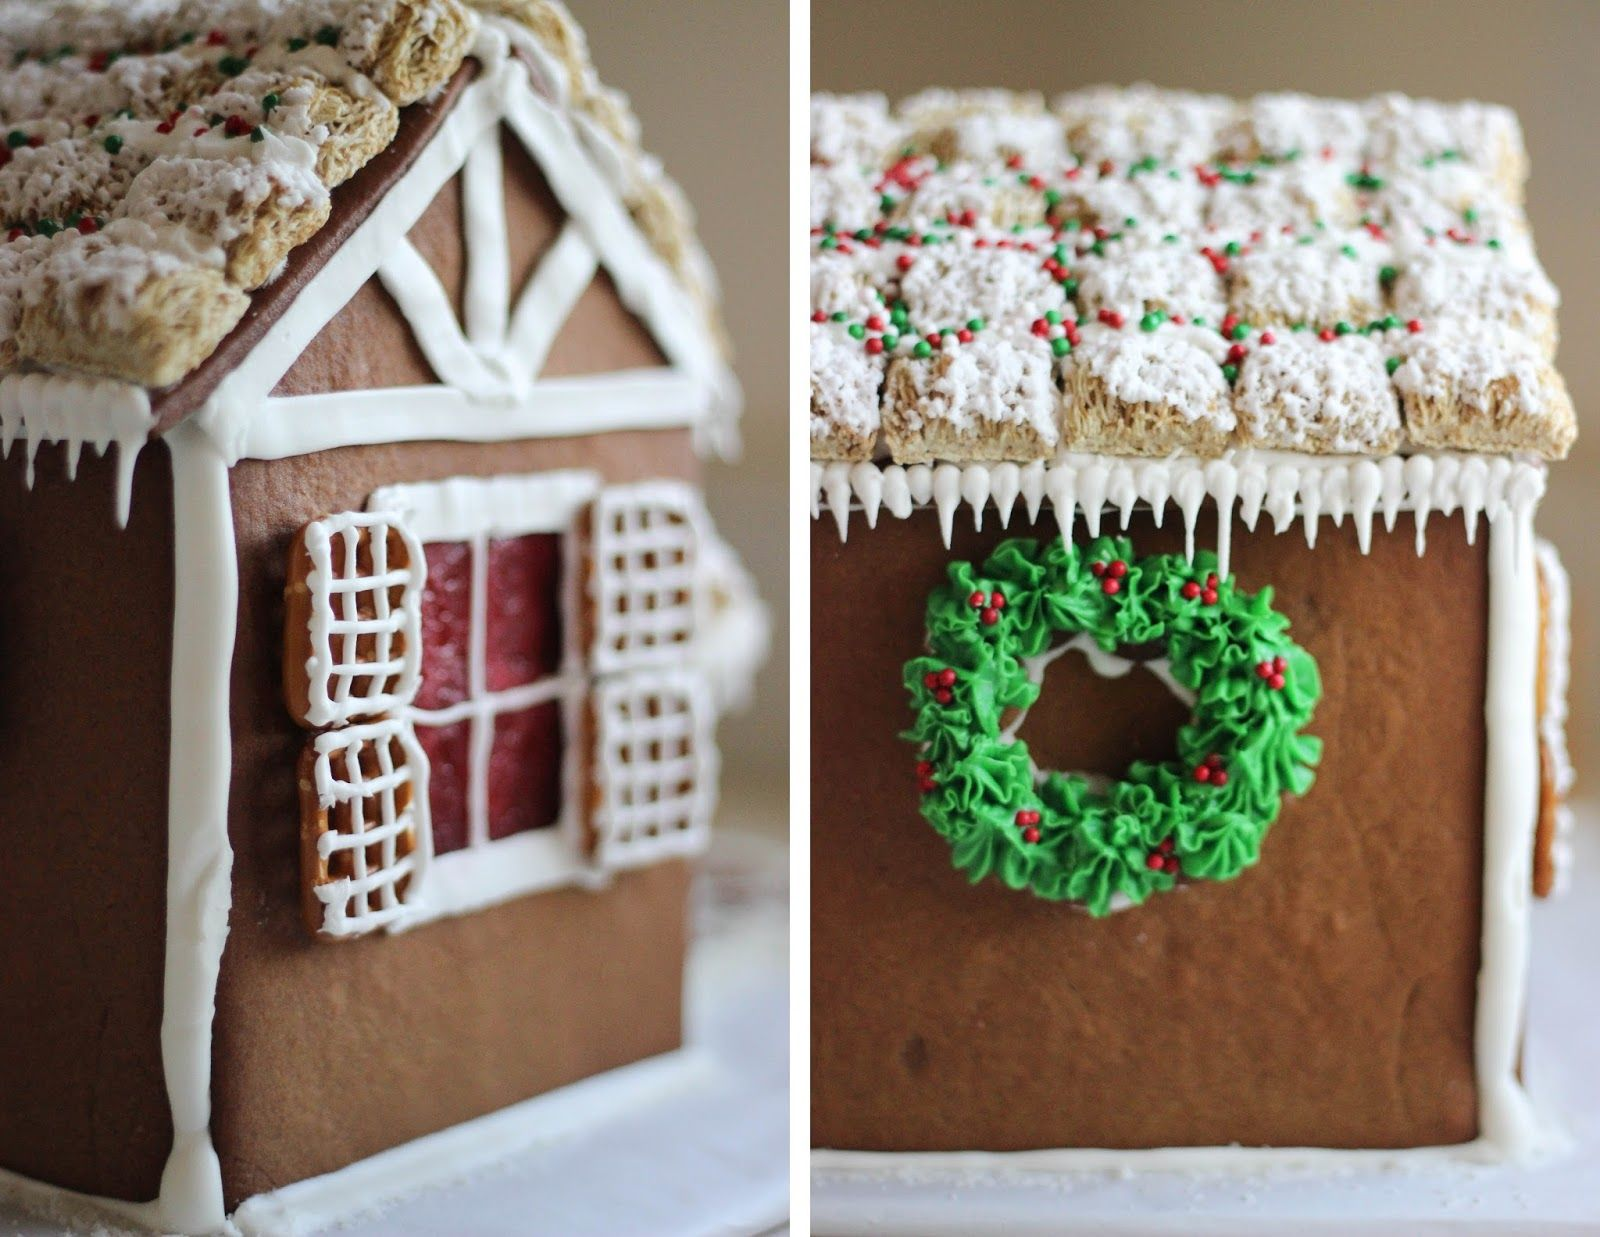 Gingerbread Houses Free Printable Pattern To Make Your